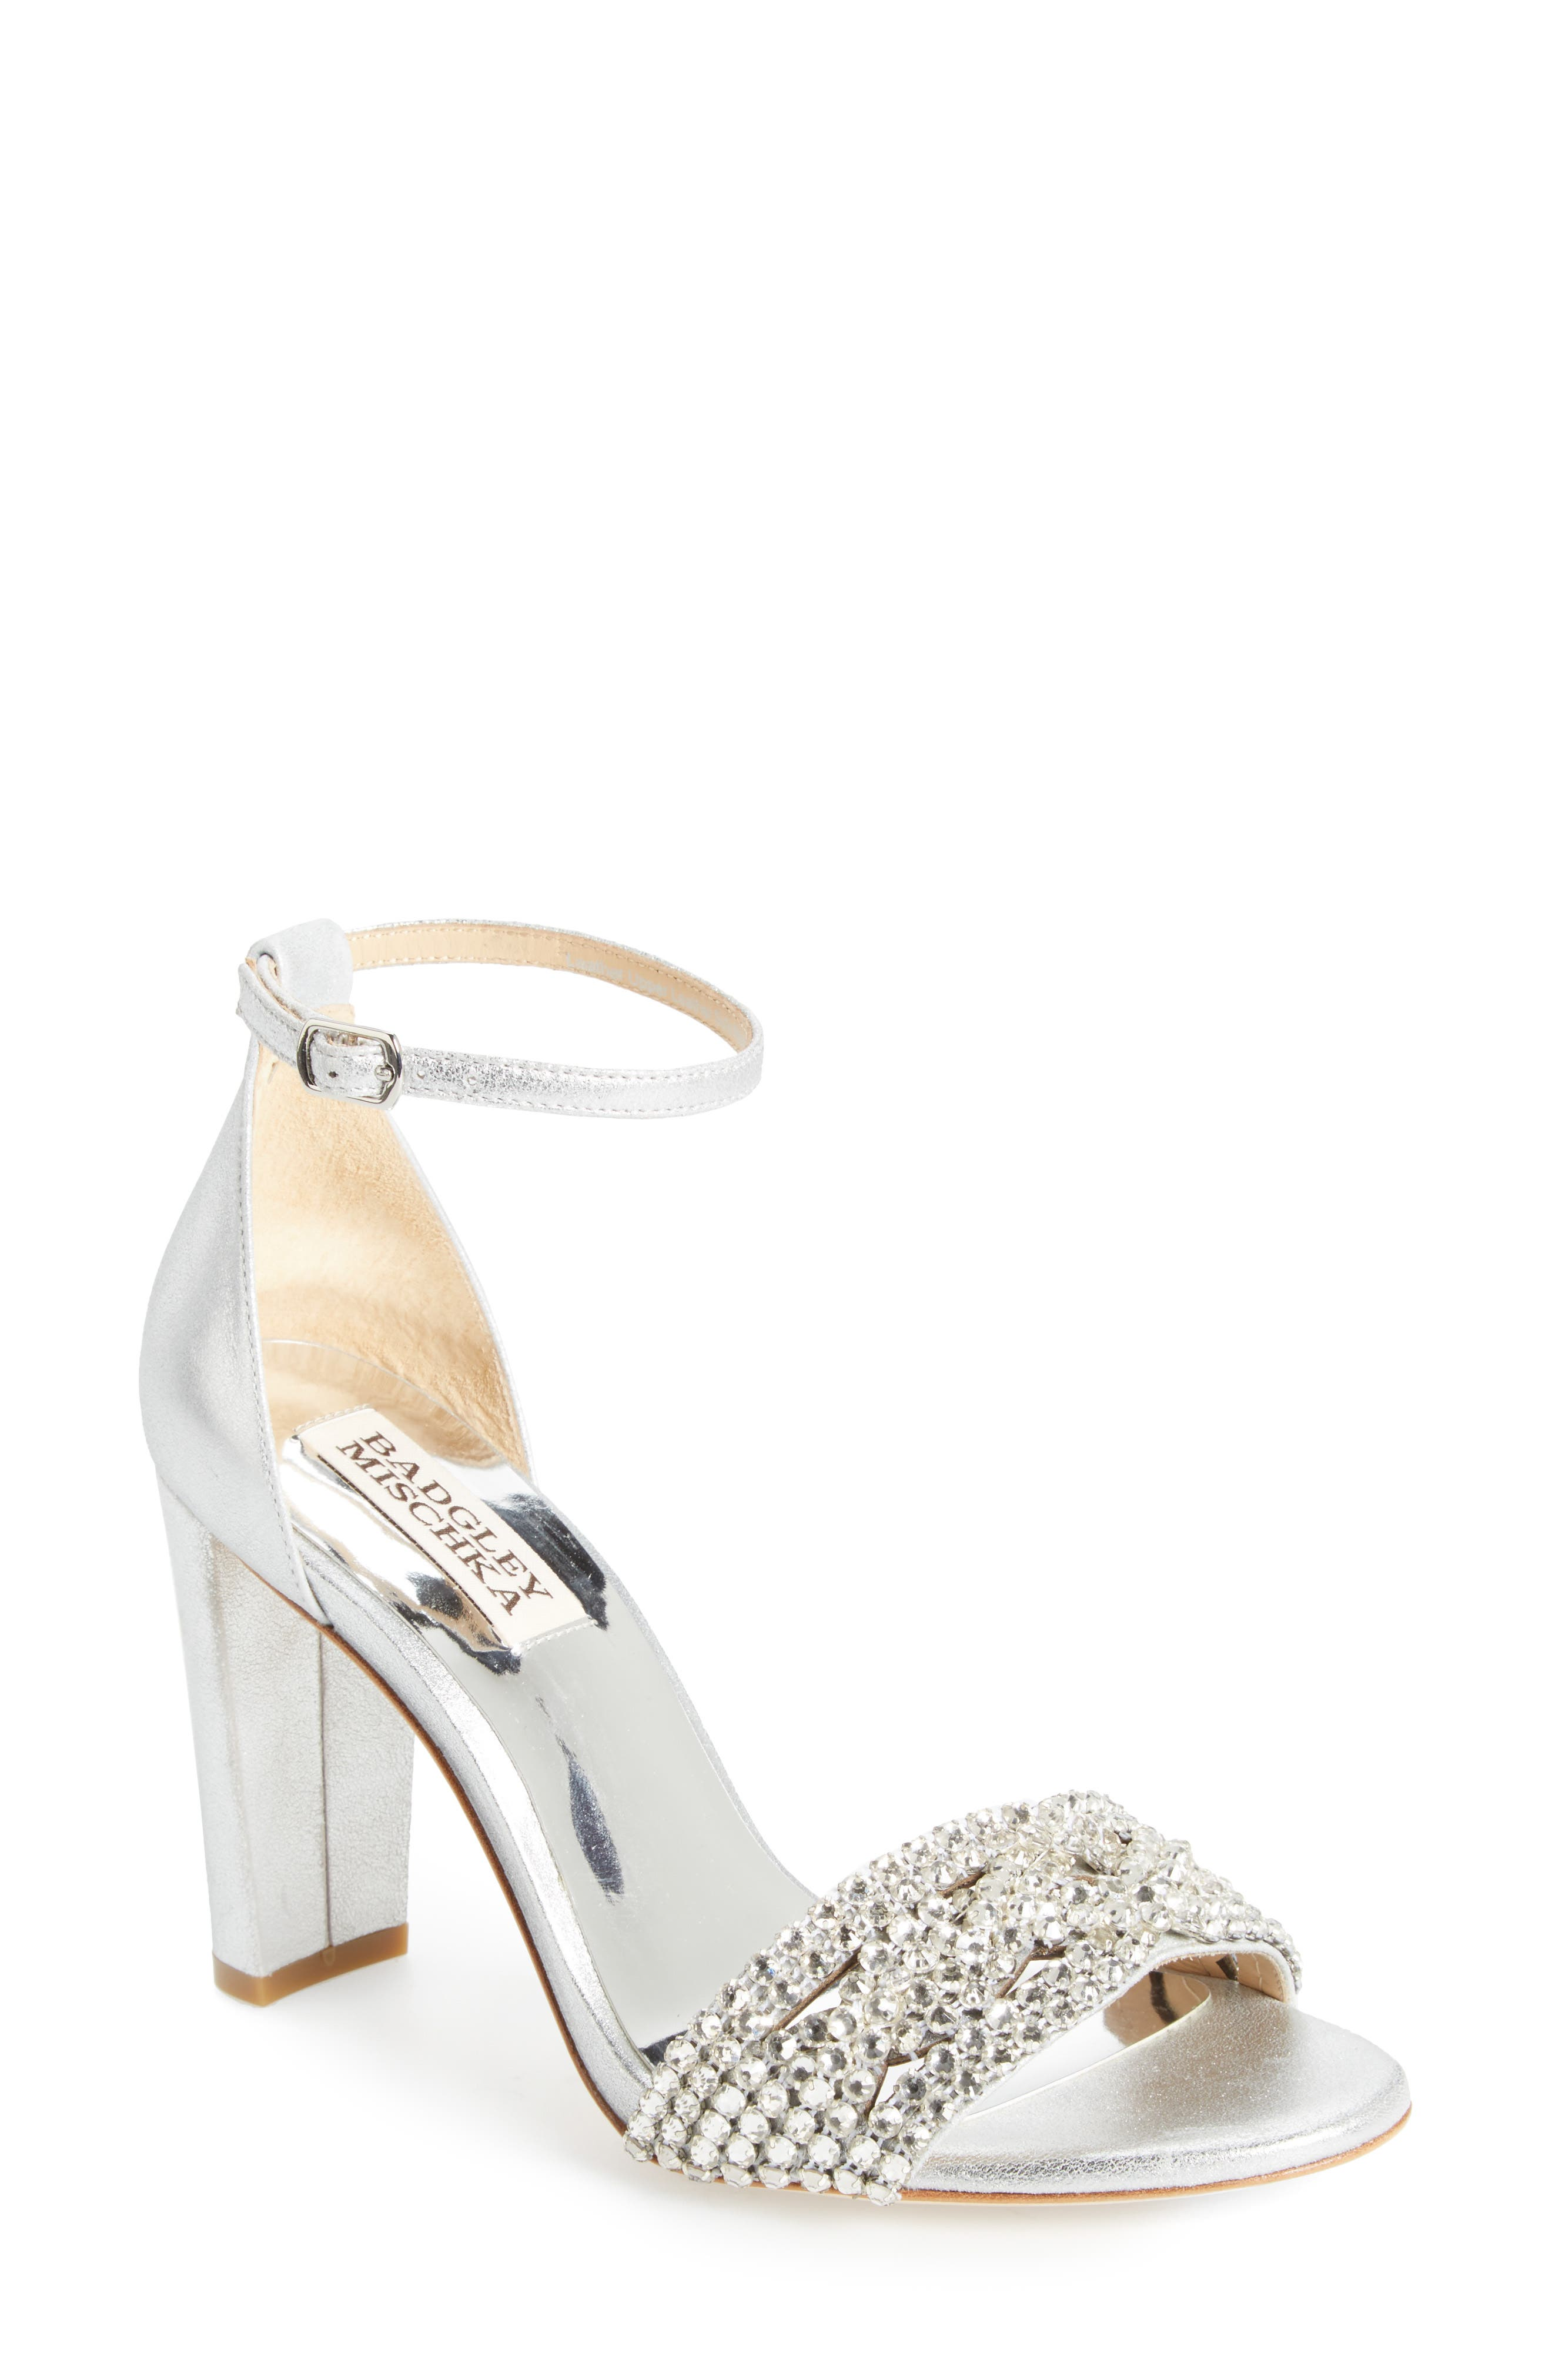 BADGLEY MISCHKA Tessa Crystal Embellished Sandal